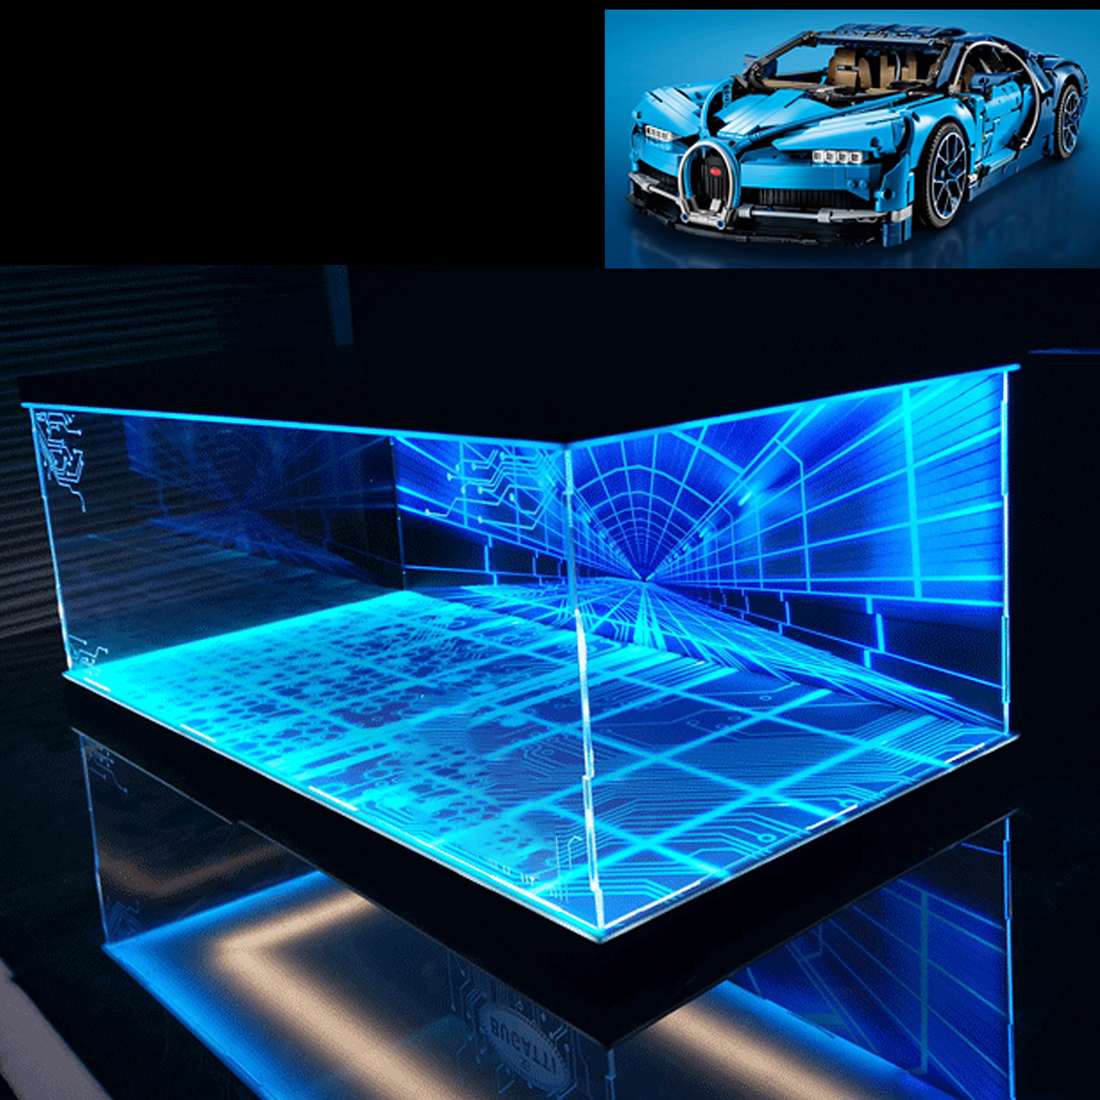 Building Block Acrylic Dustproof Display Box Show Box for Buggati Veyron 42083 (Display Box Included Only, No Kit) - 3 Lights